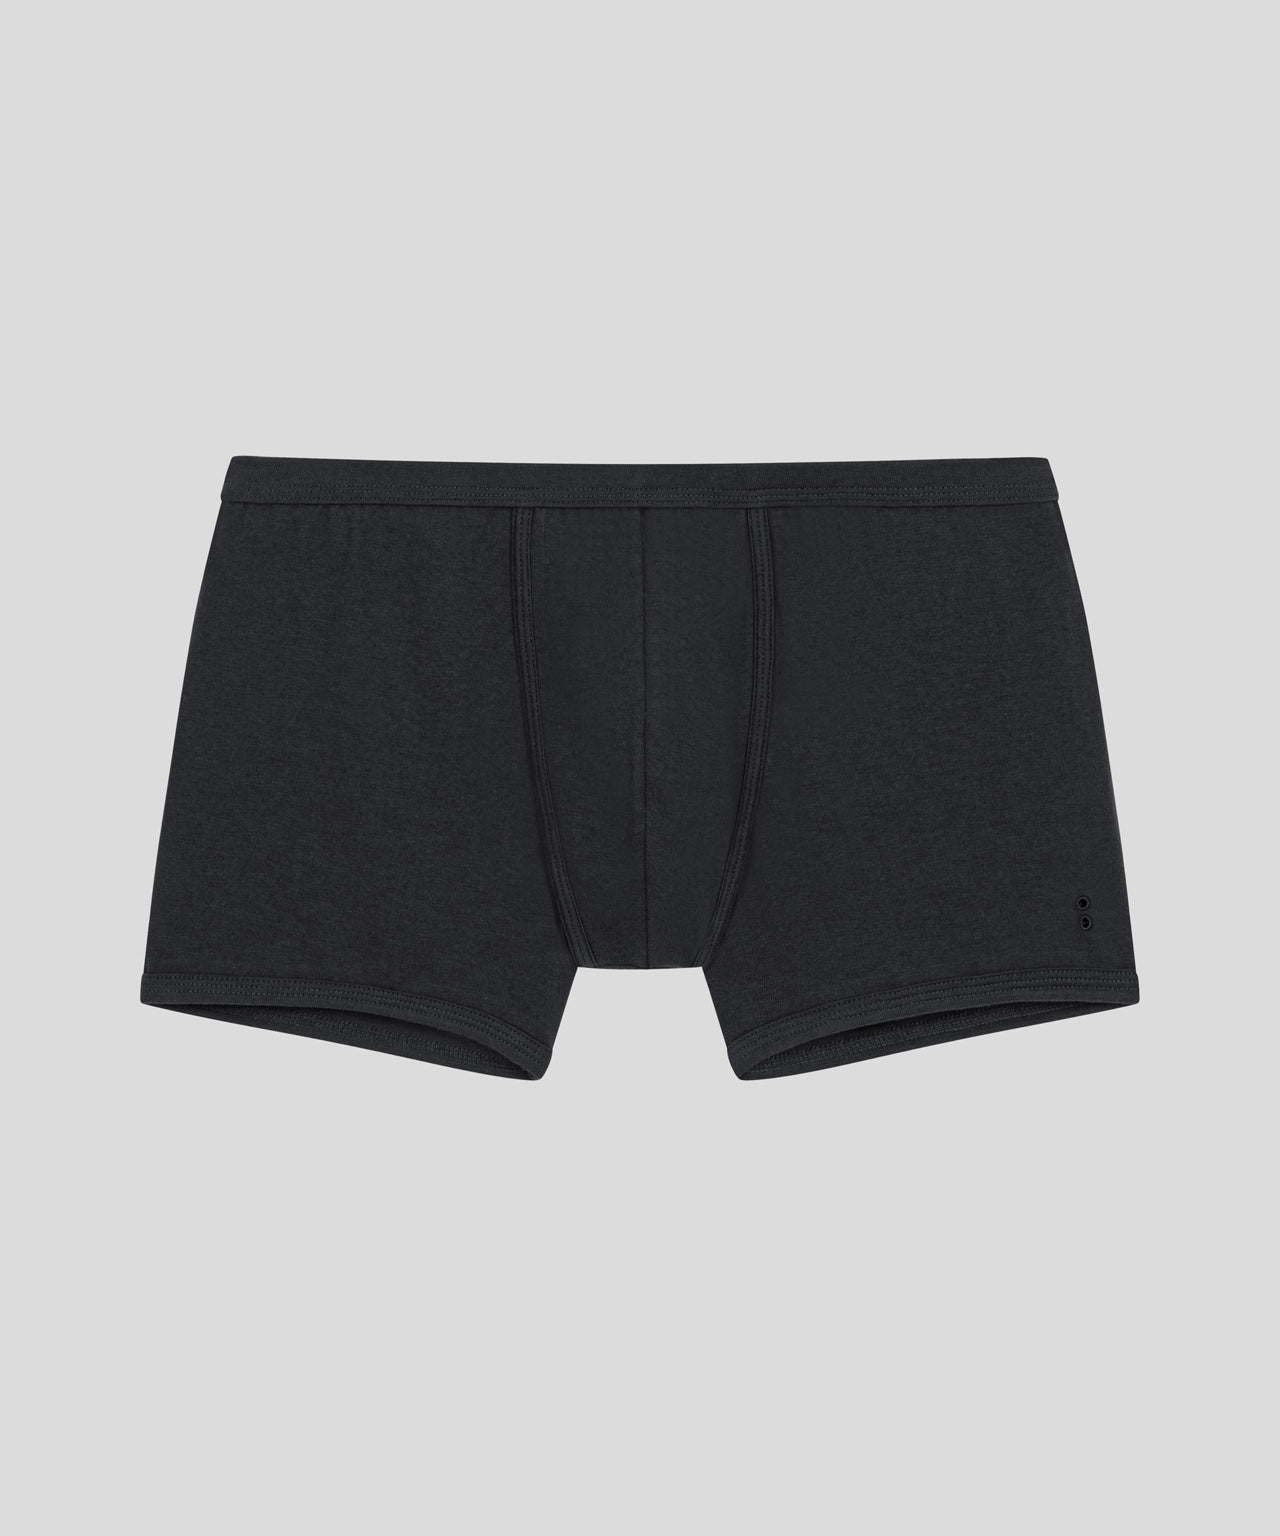 747 Boxer Briefs Kit - black